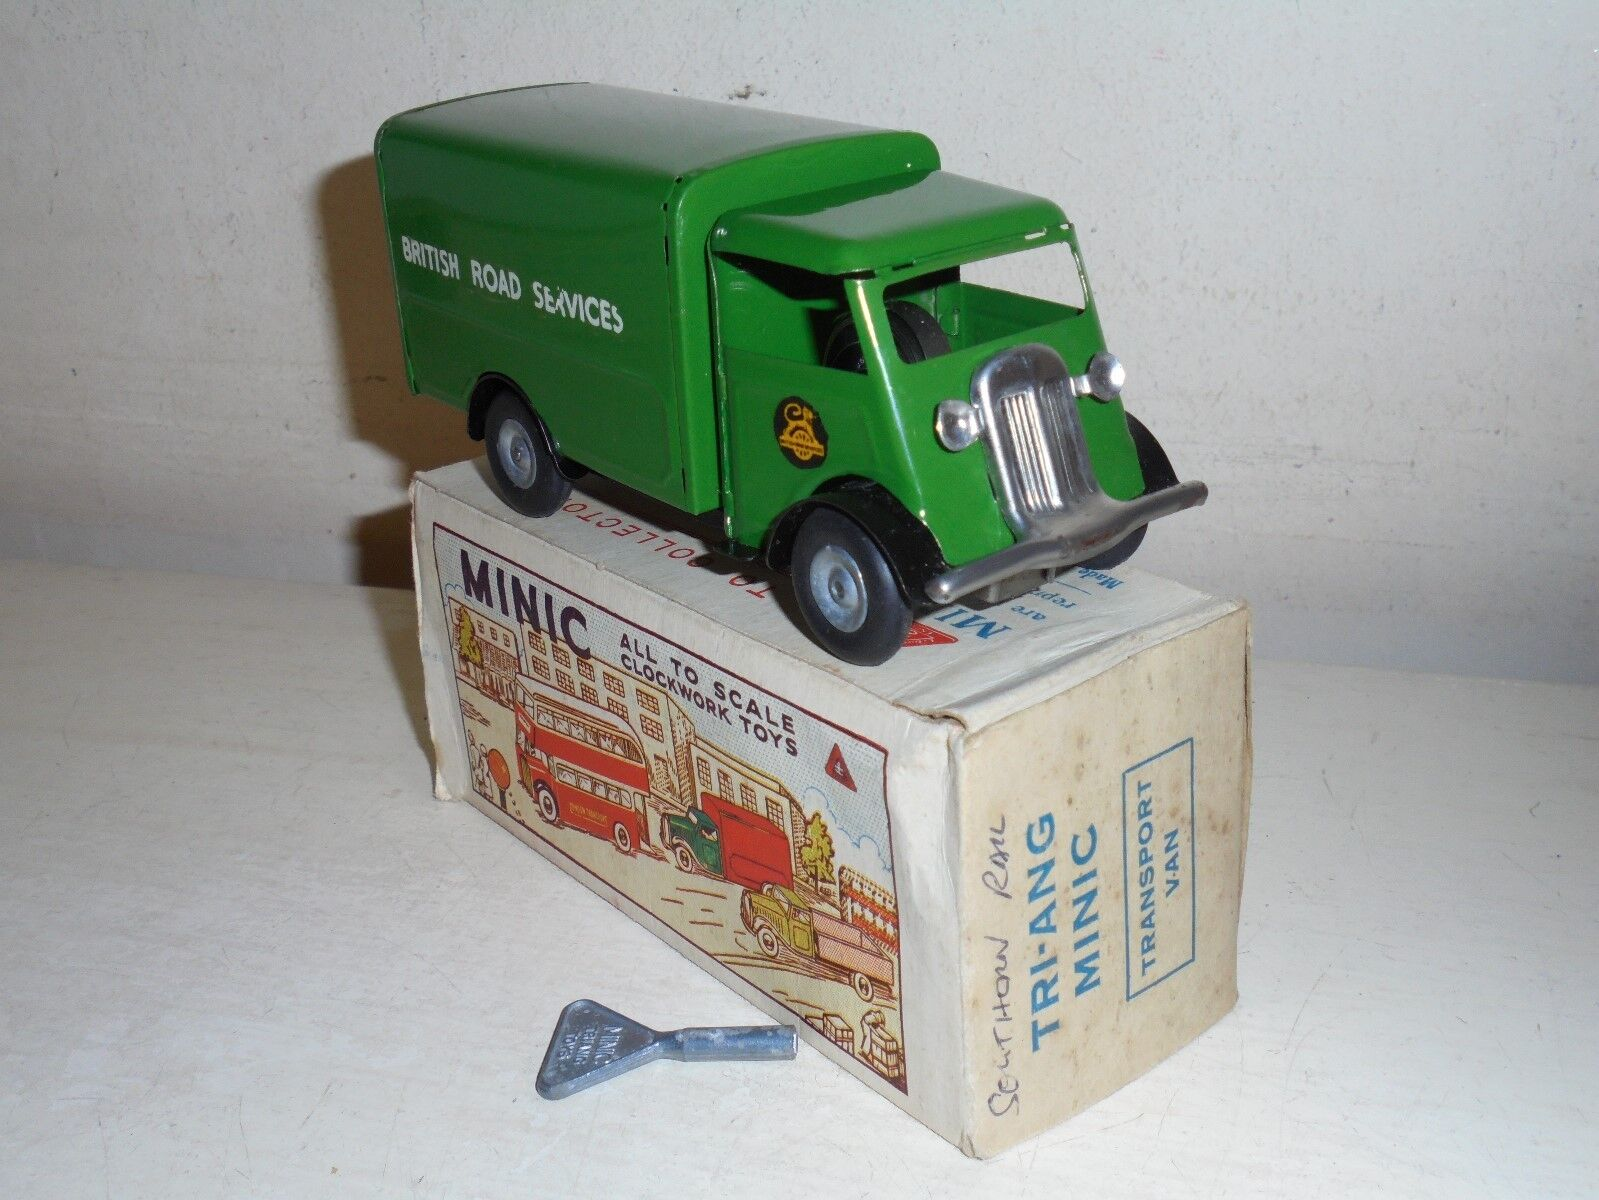 TRI-ANG MINIC Tinplate-124M British Road Services Van(green)c w-superb bxd-c1956